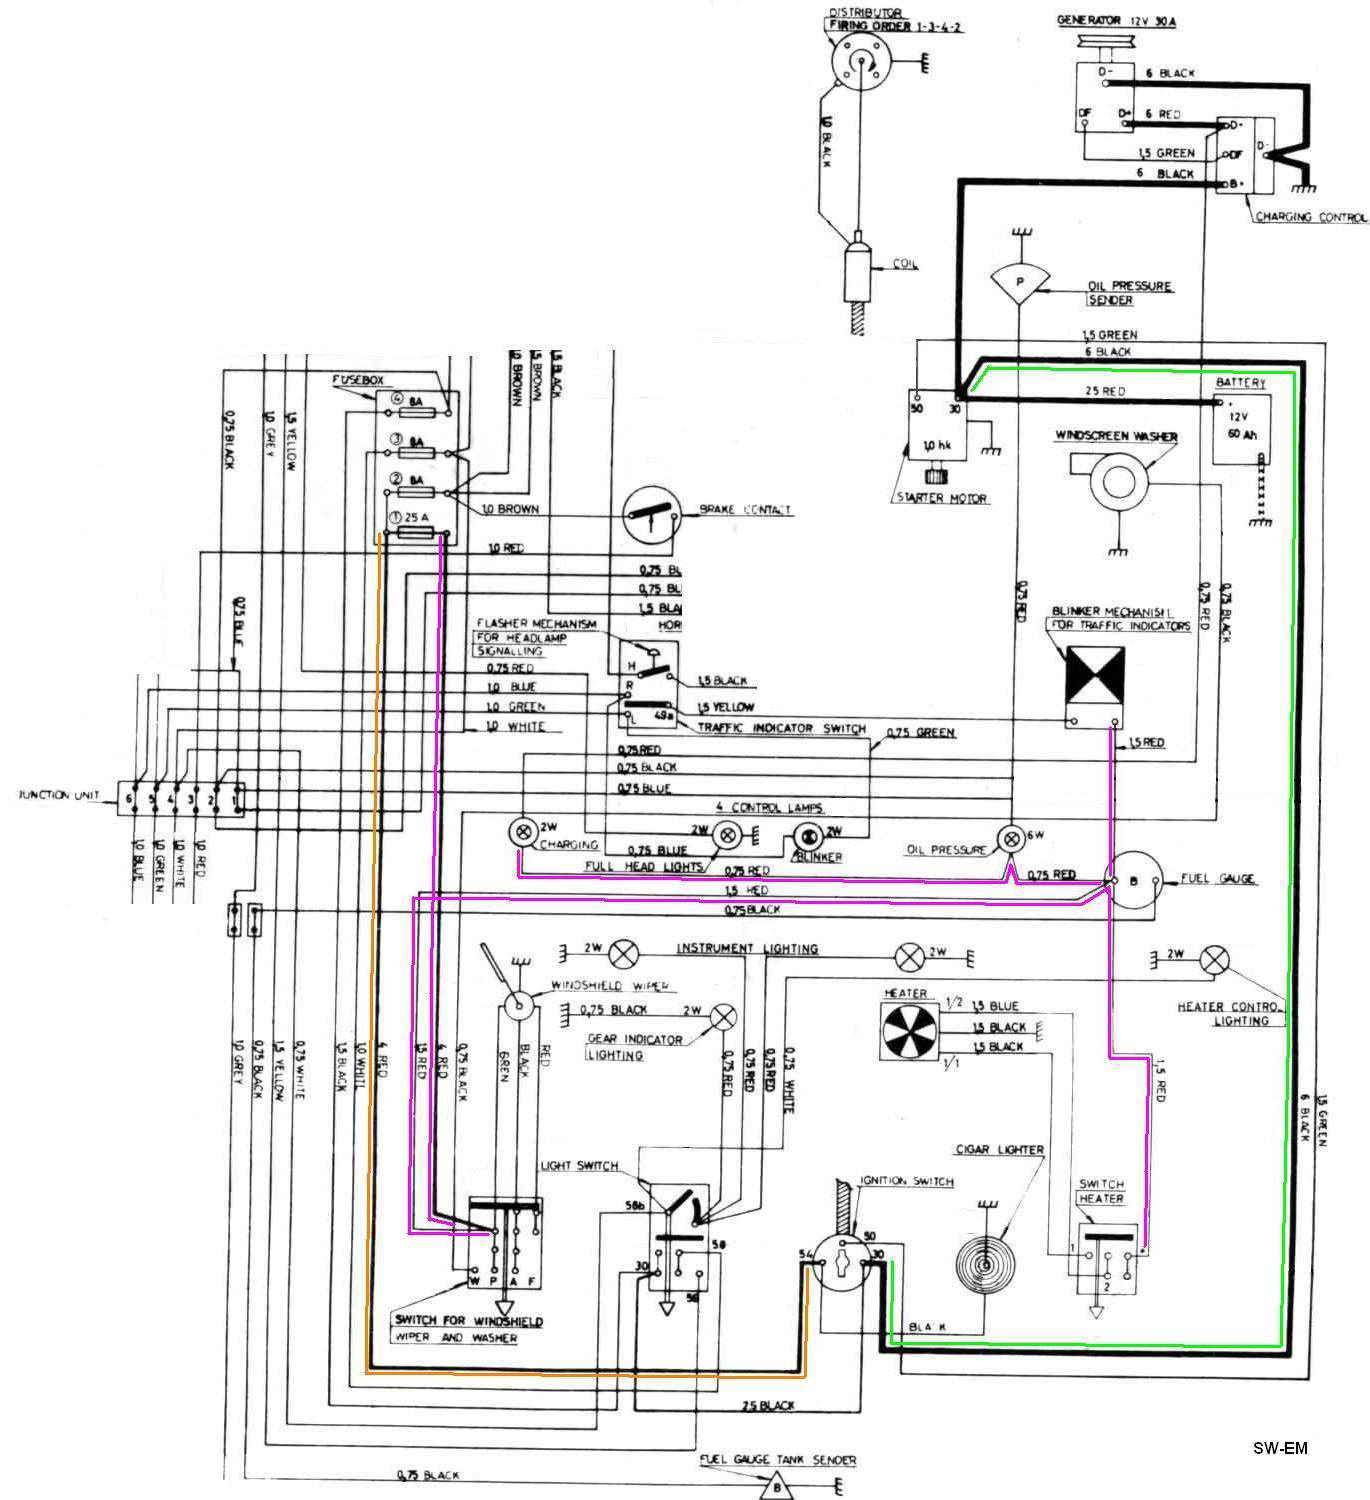 037898A Auto Reset Circuit Breaker Wiring Diagram | Wiring ResourcesWiring Resources